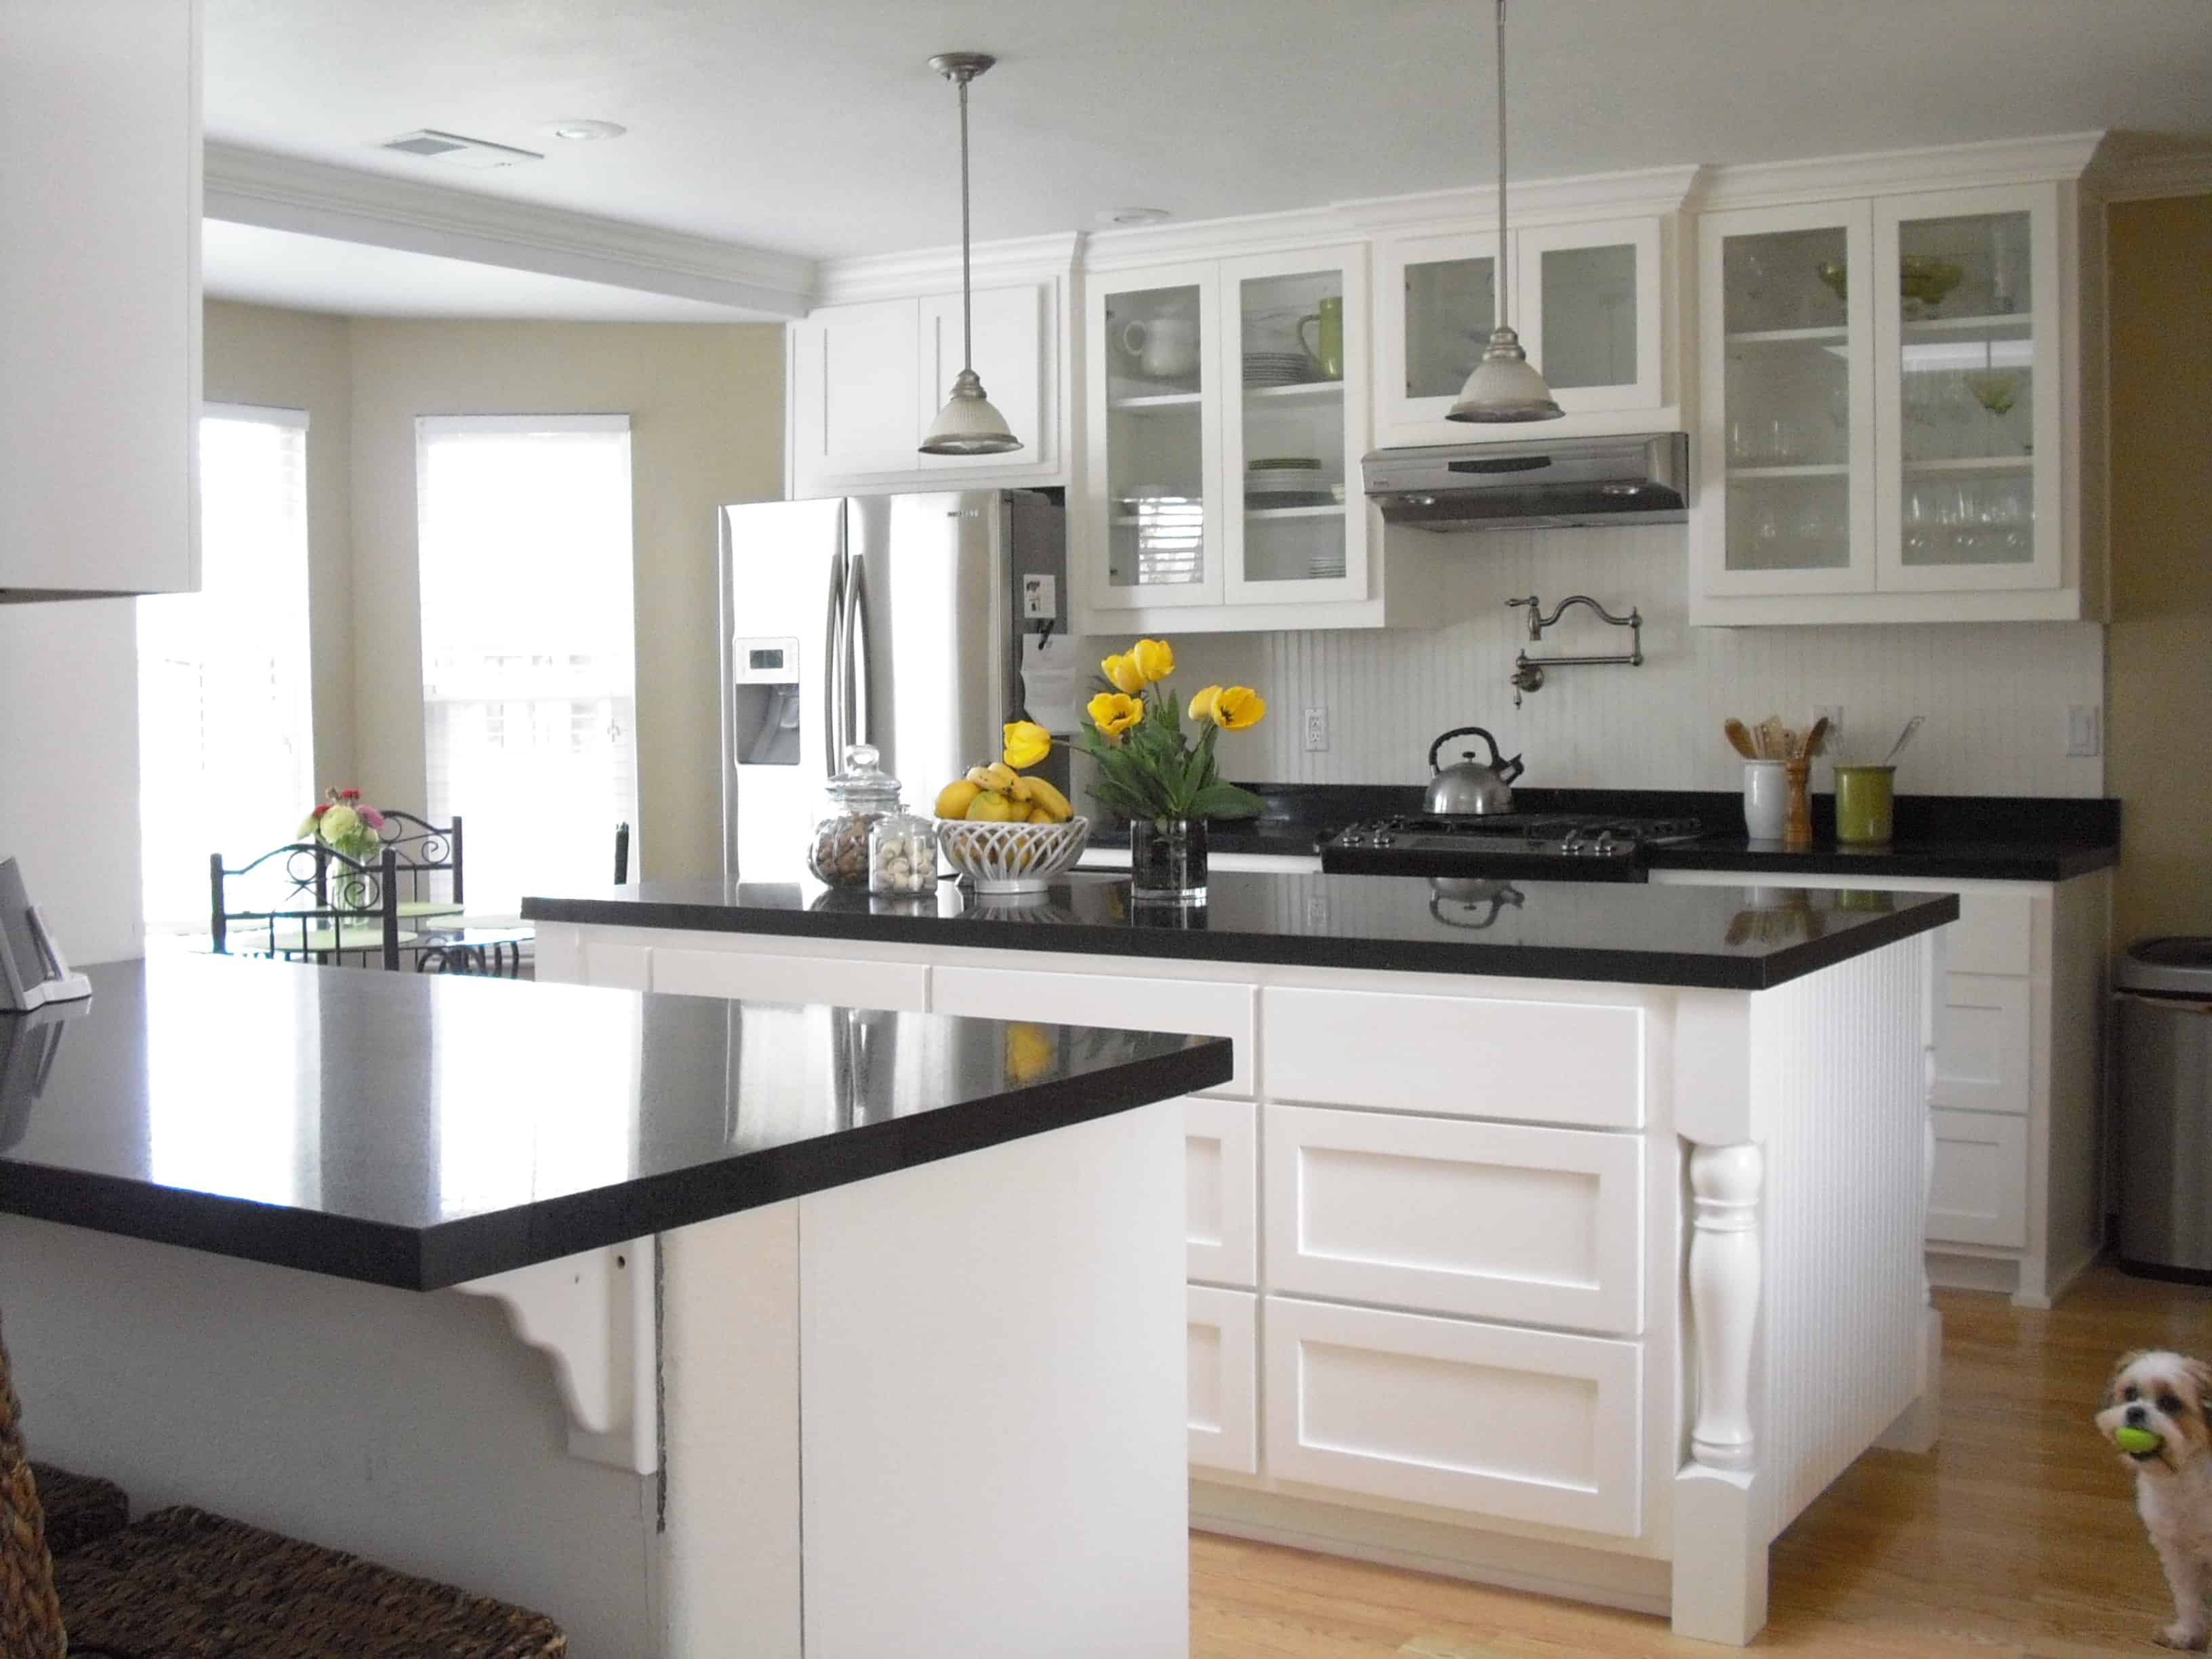 10 Trendy Kitchen Island Ideas